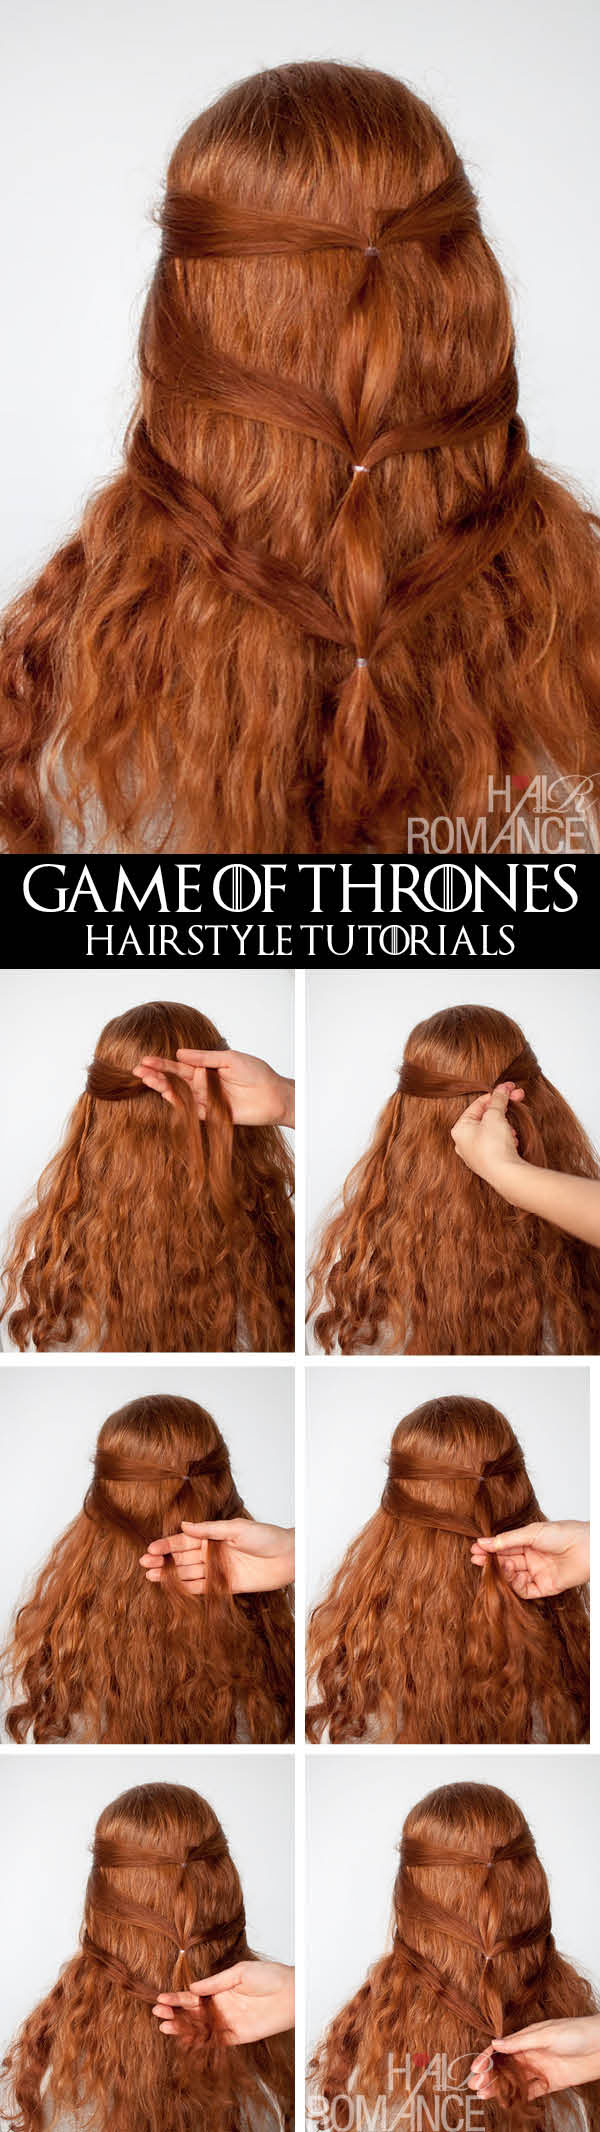 Hair Romance - Game of Thrones - hairstyle tutorials - Daenerys Targaryen hairstyle